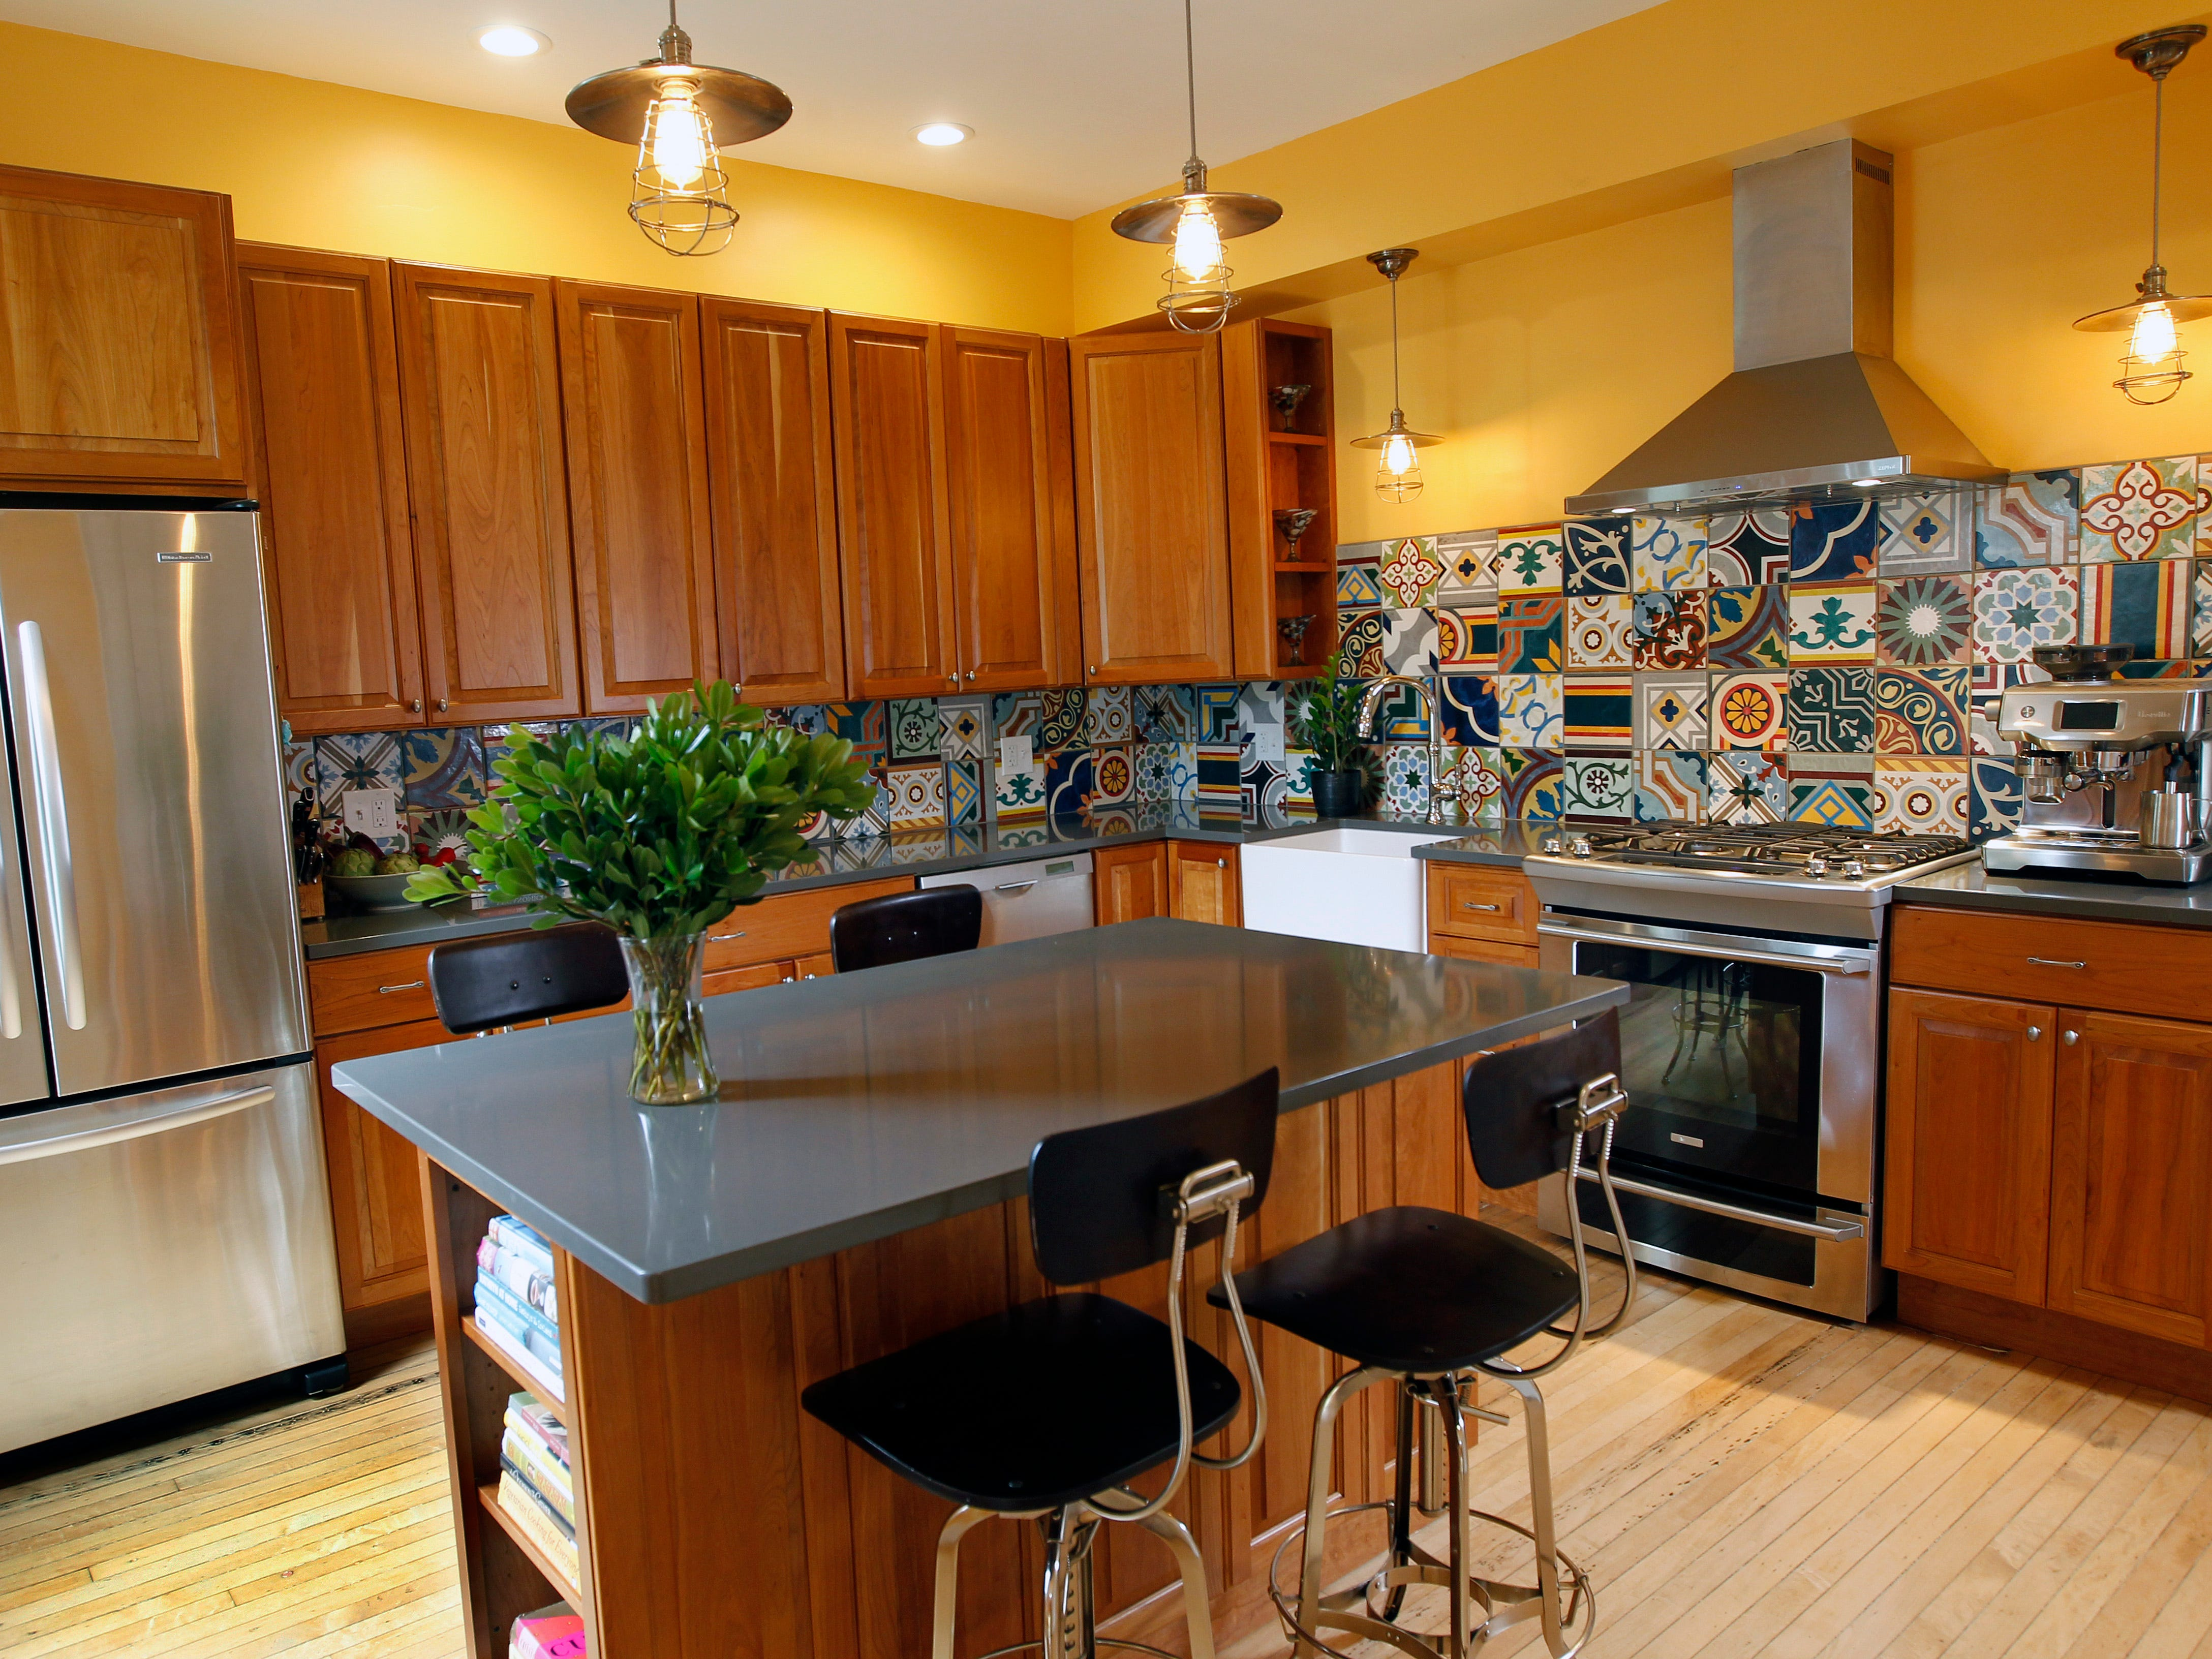 The completely redone kitchen features a quartz countertop island, pendant lighting and colorful tiles with a quilt-like pattern.